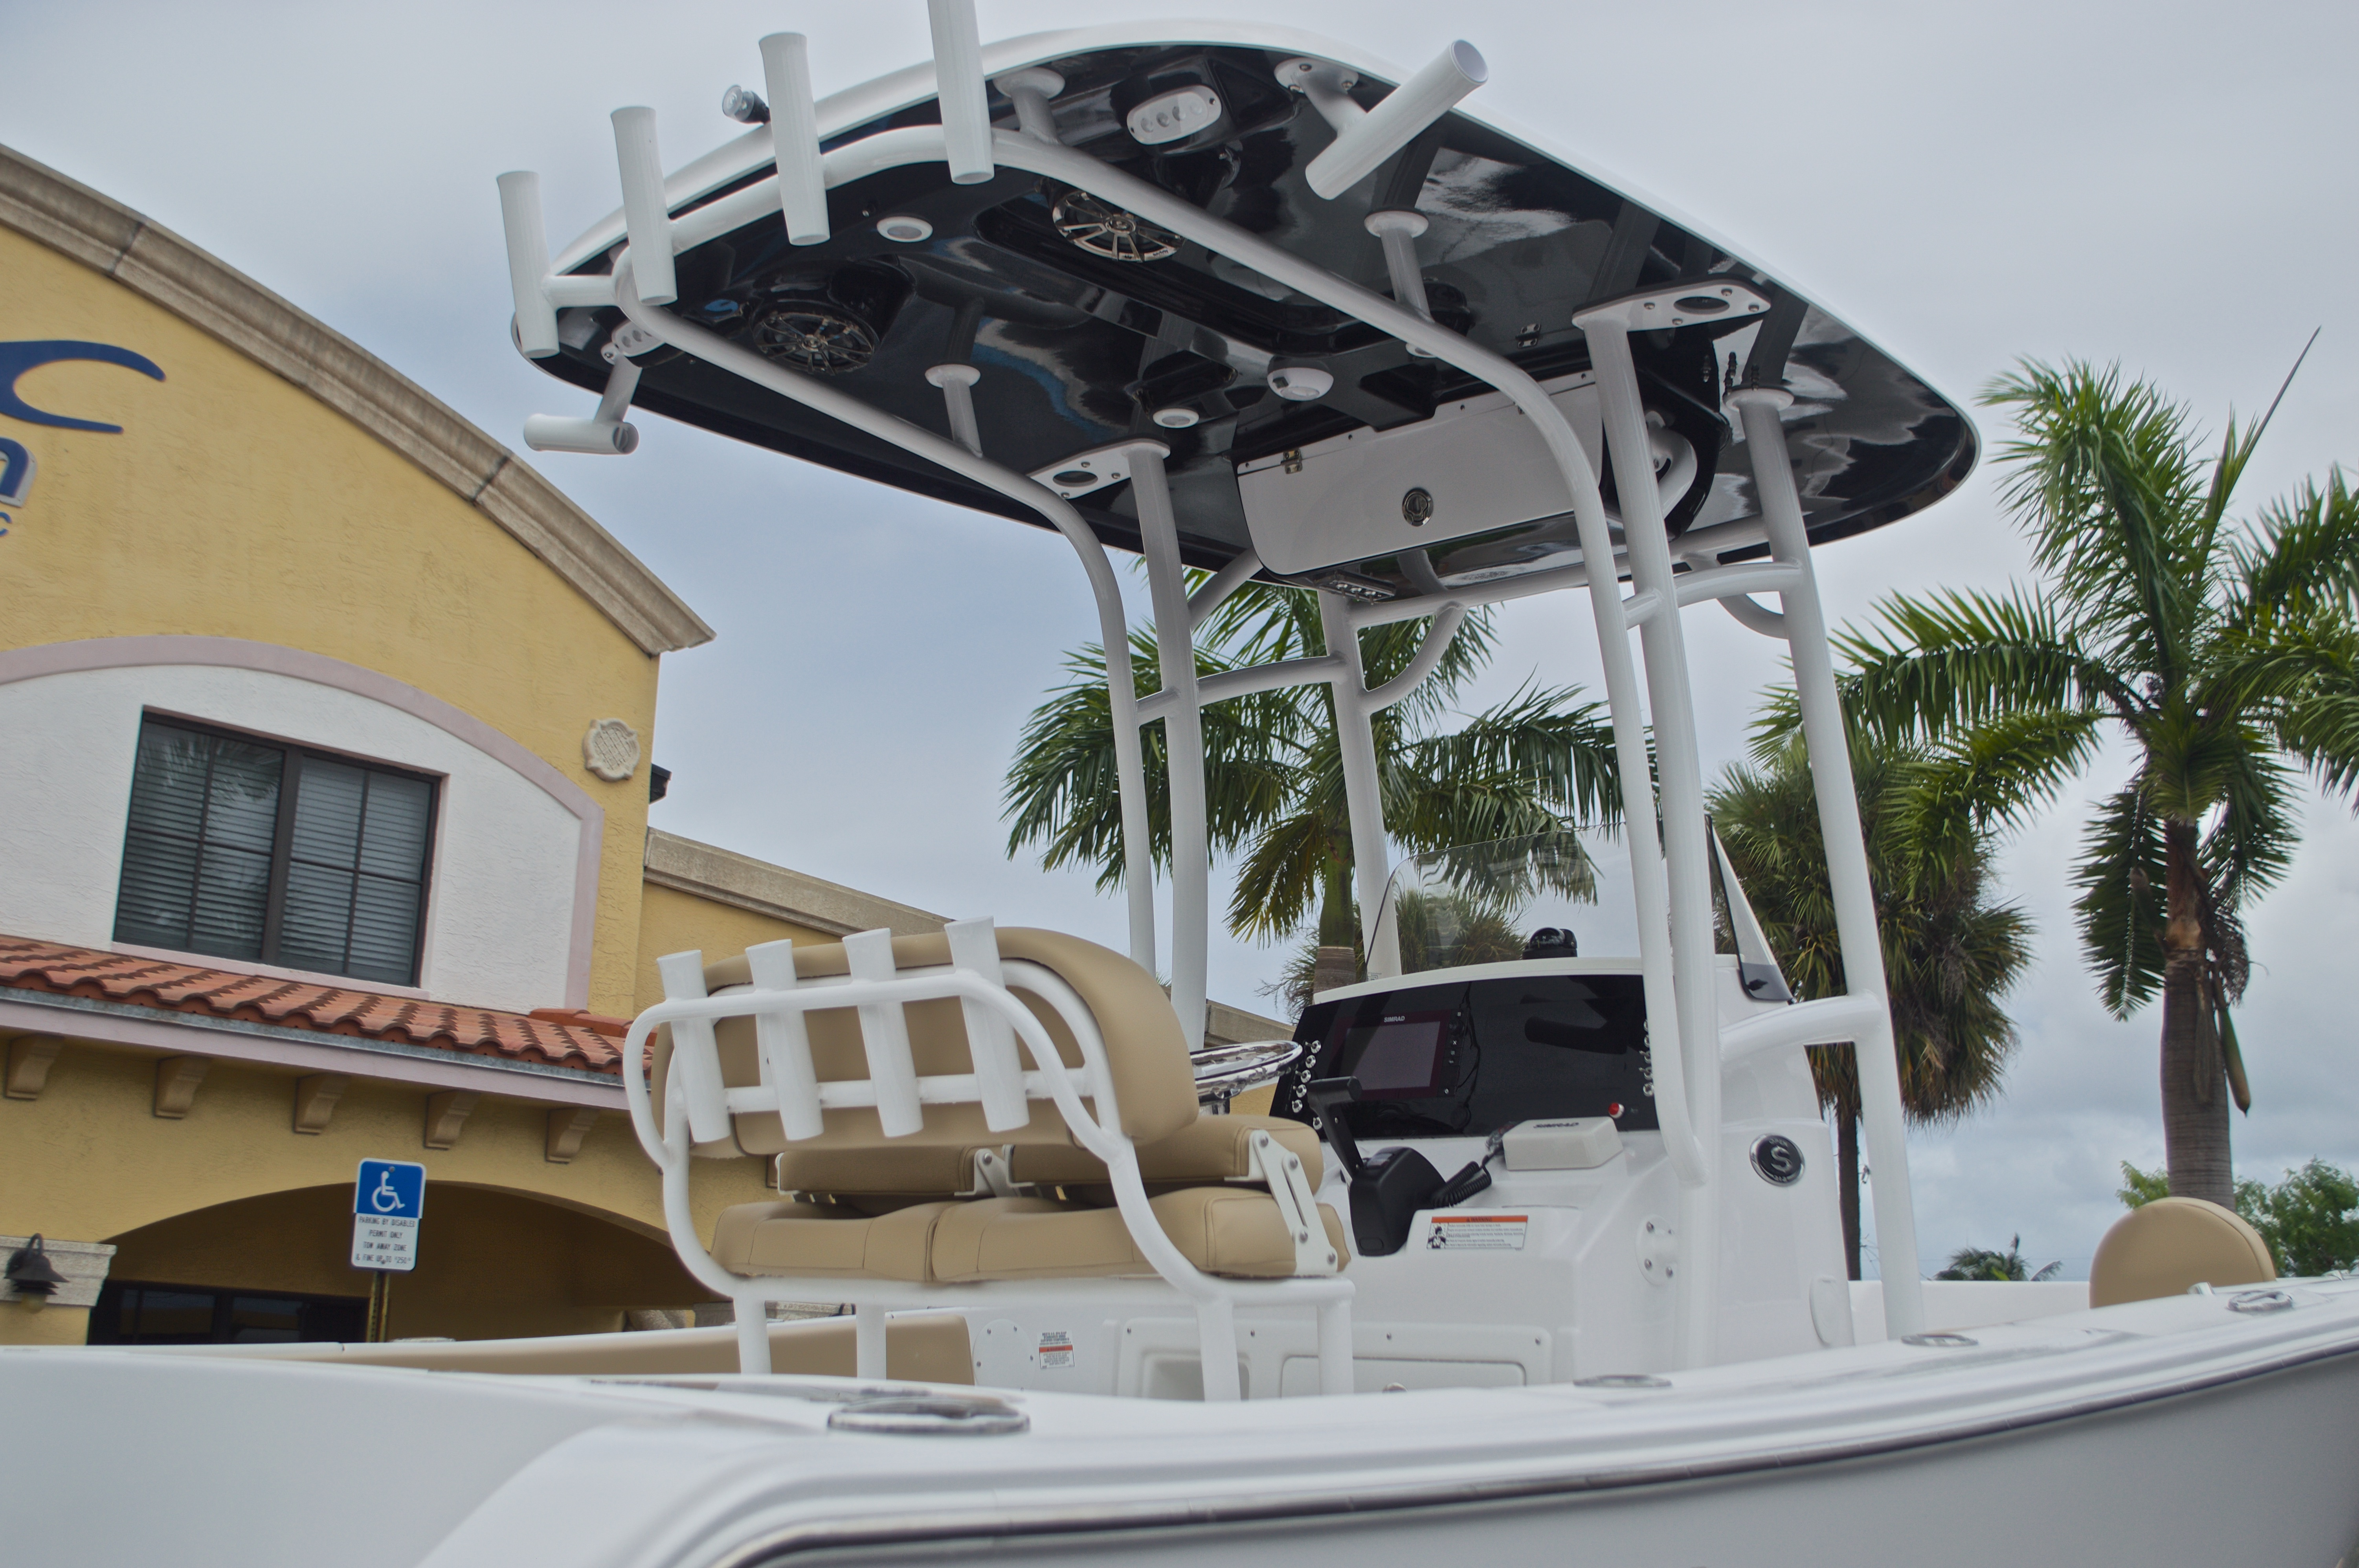 Thumbnail 10 for New 2017 Sportsman Open 212 Center Console boat for sale in Miami, FL